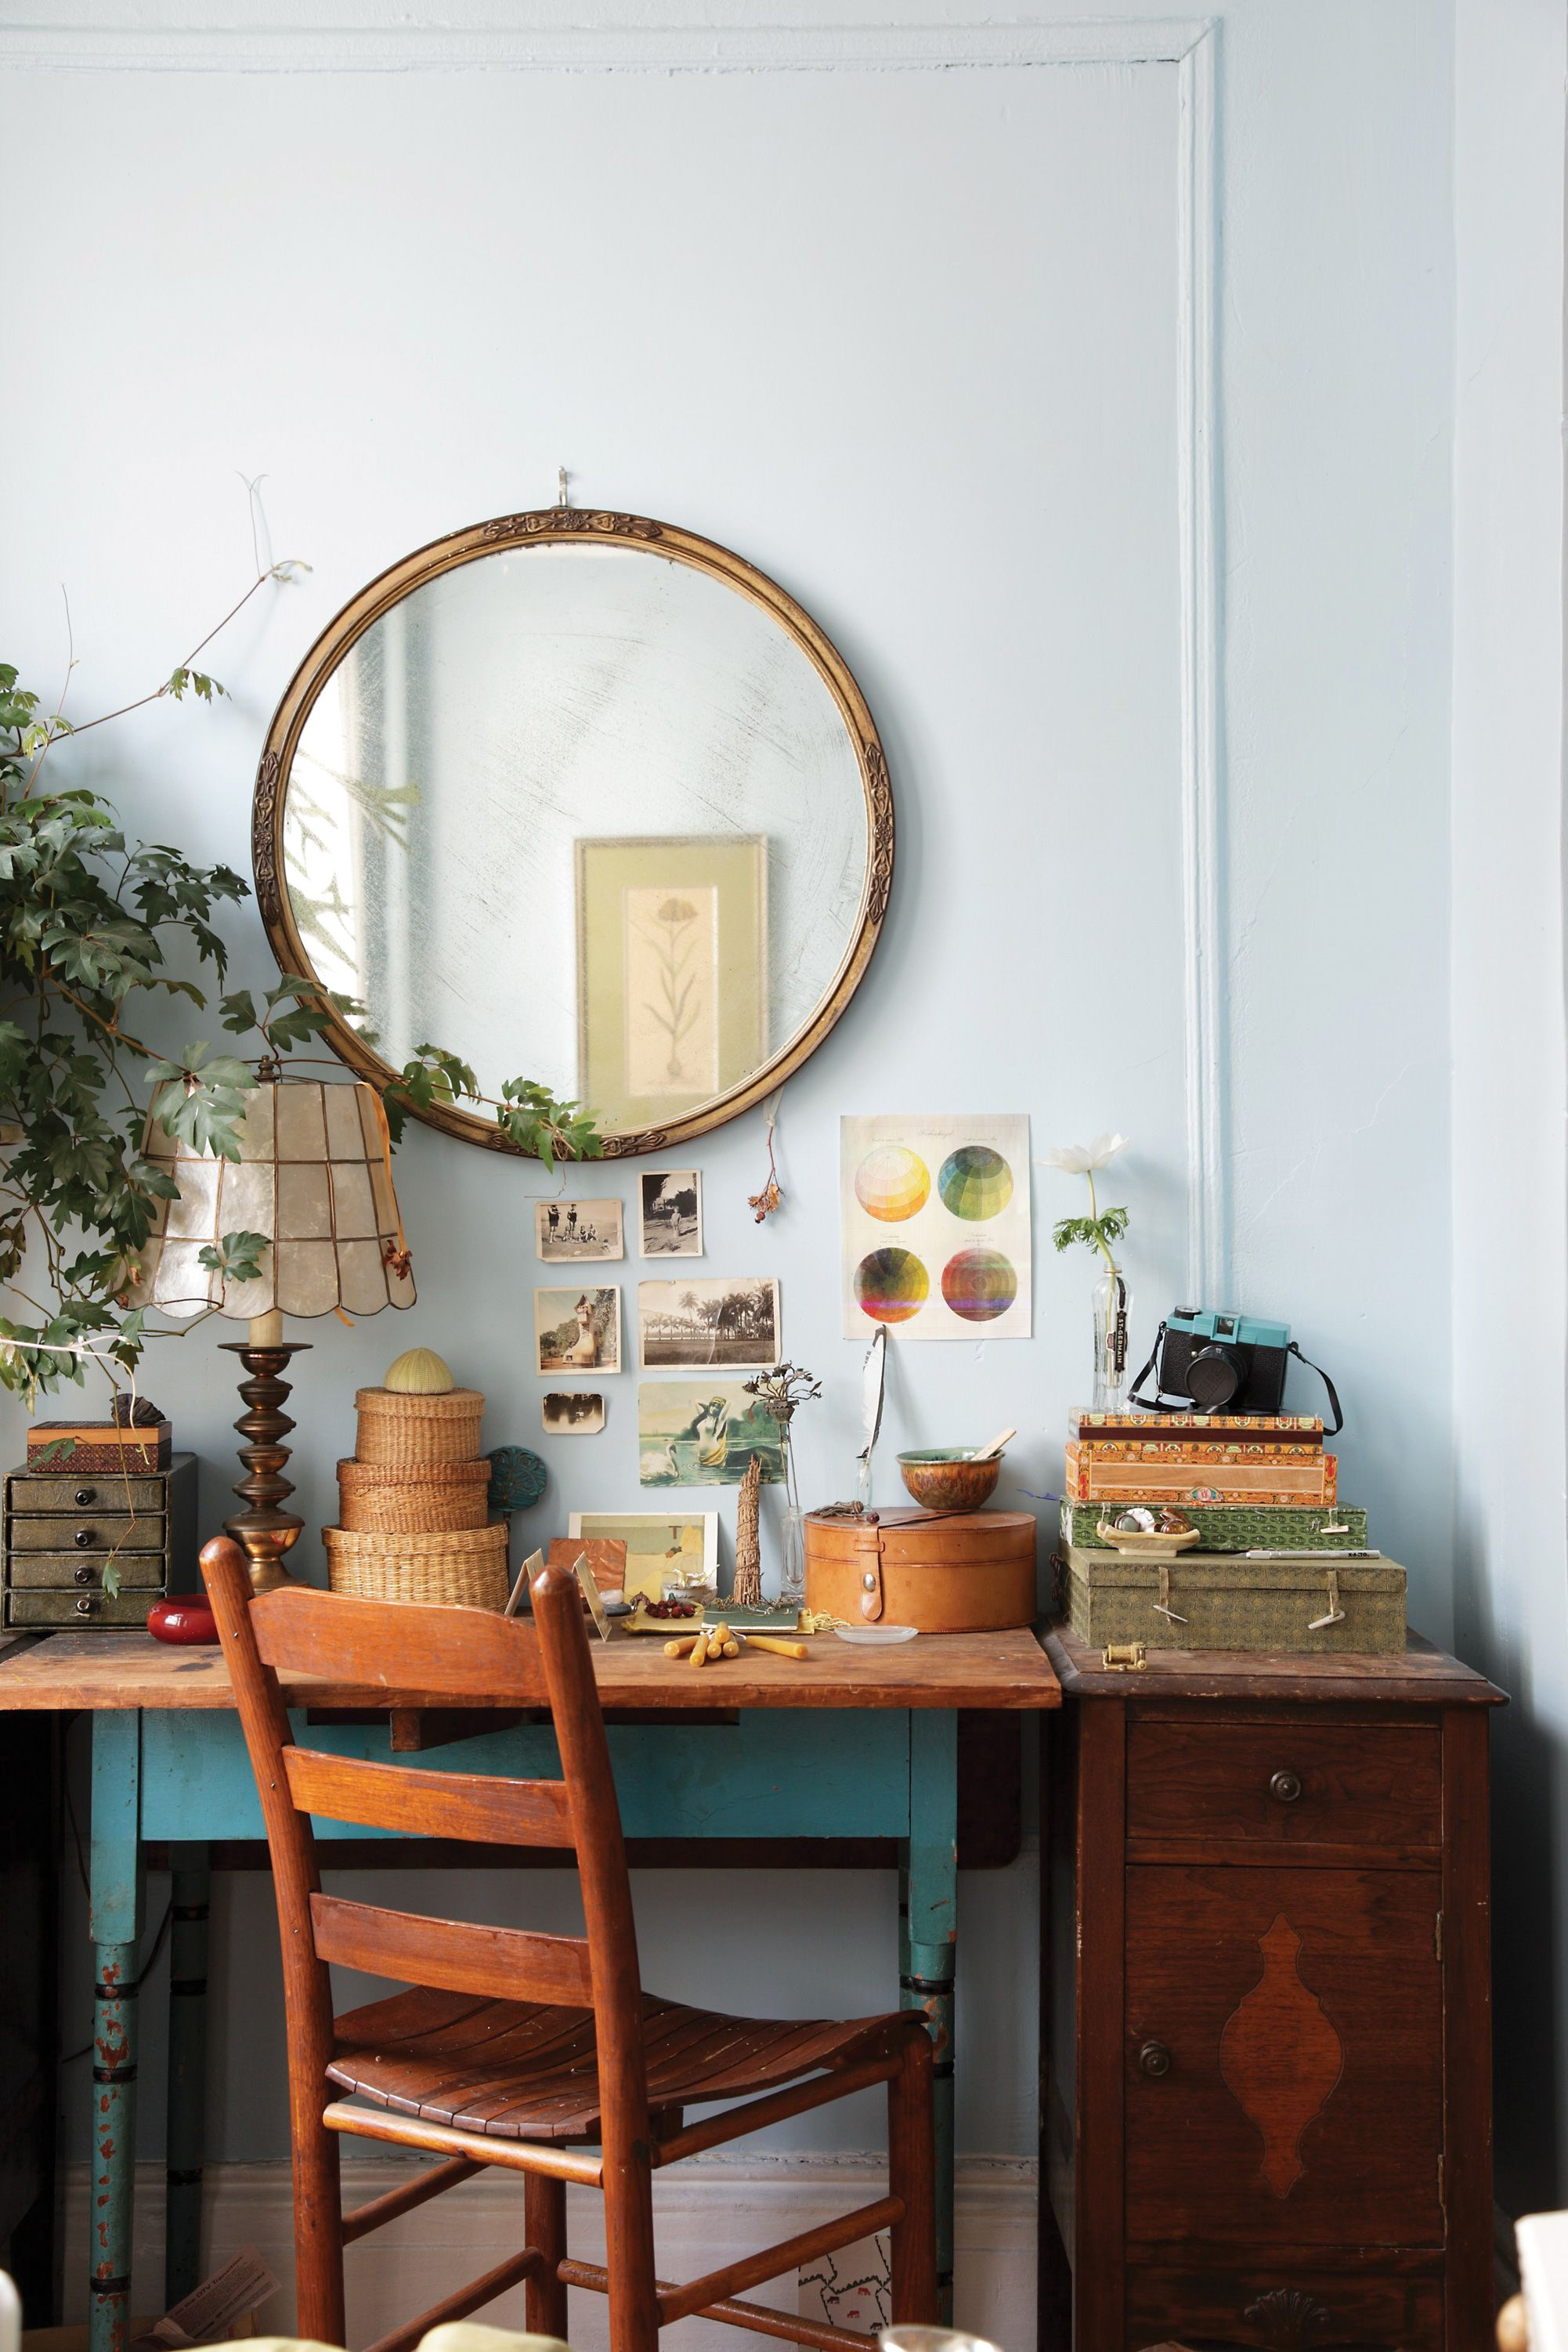 15 Best Images About Turquoise Room Decorations | Pinterest | Urban ...